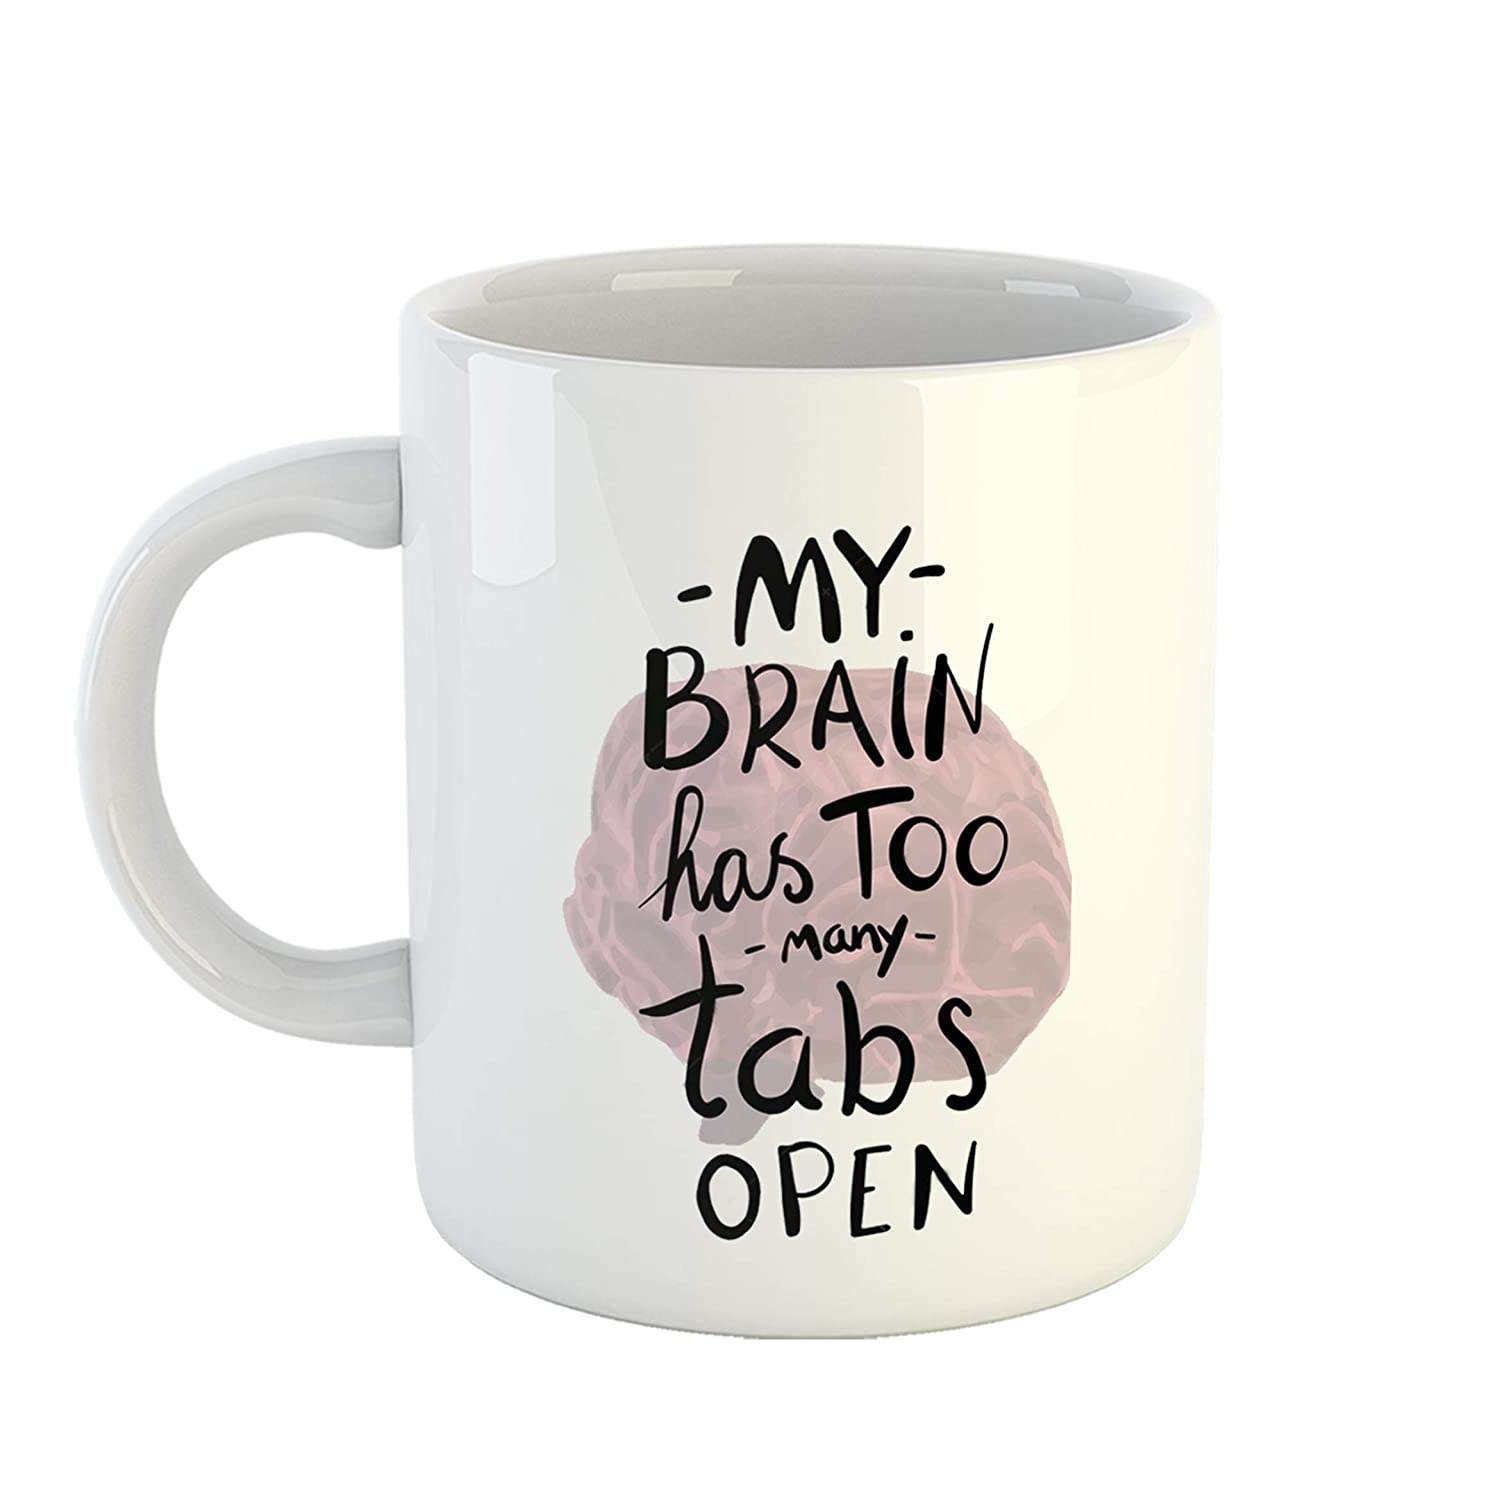 A white coffee mug with a pale pink brain illustration and the text 'my brain has too many tabs open' written in a brush font.